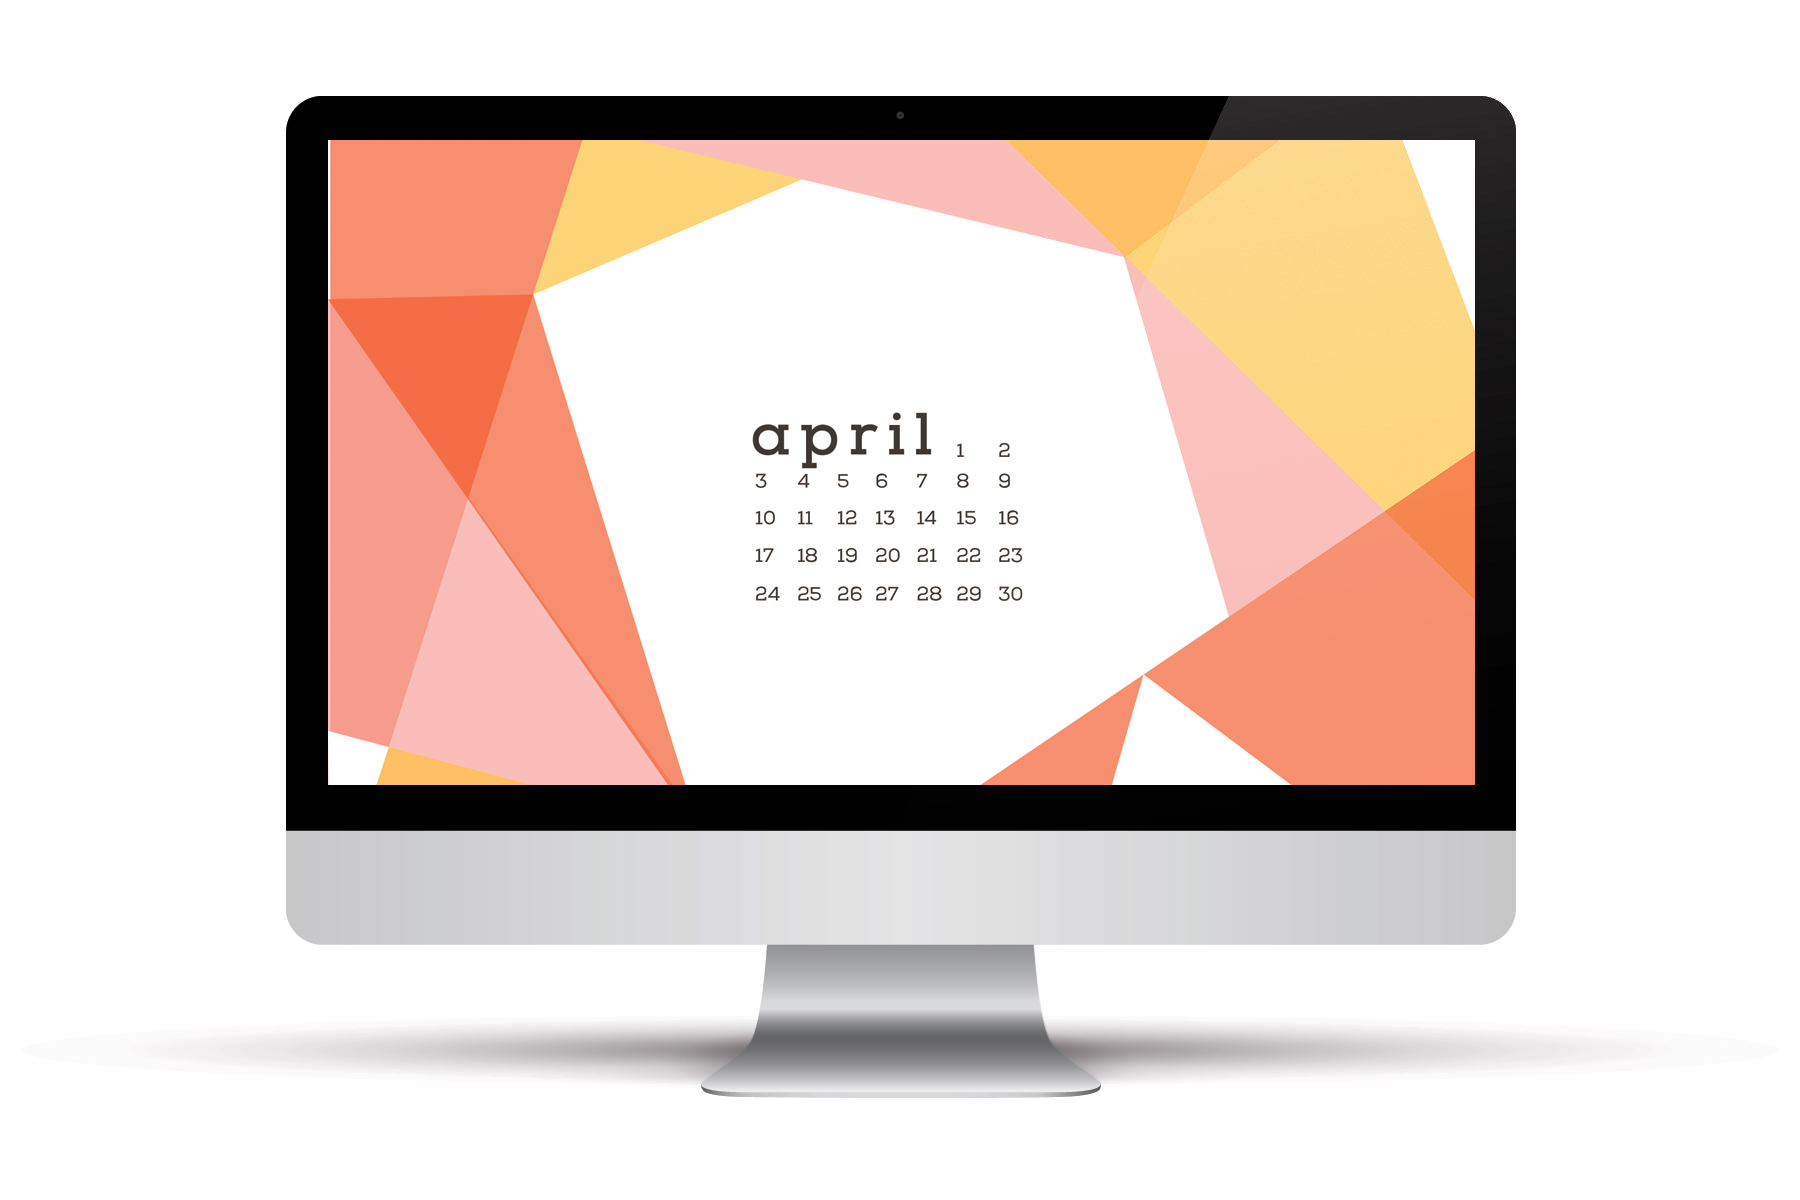 April 2016 Calendars and Wallpaper Red Stamp 1800x1200